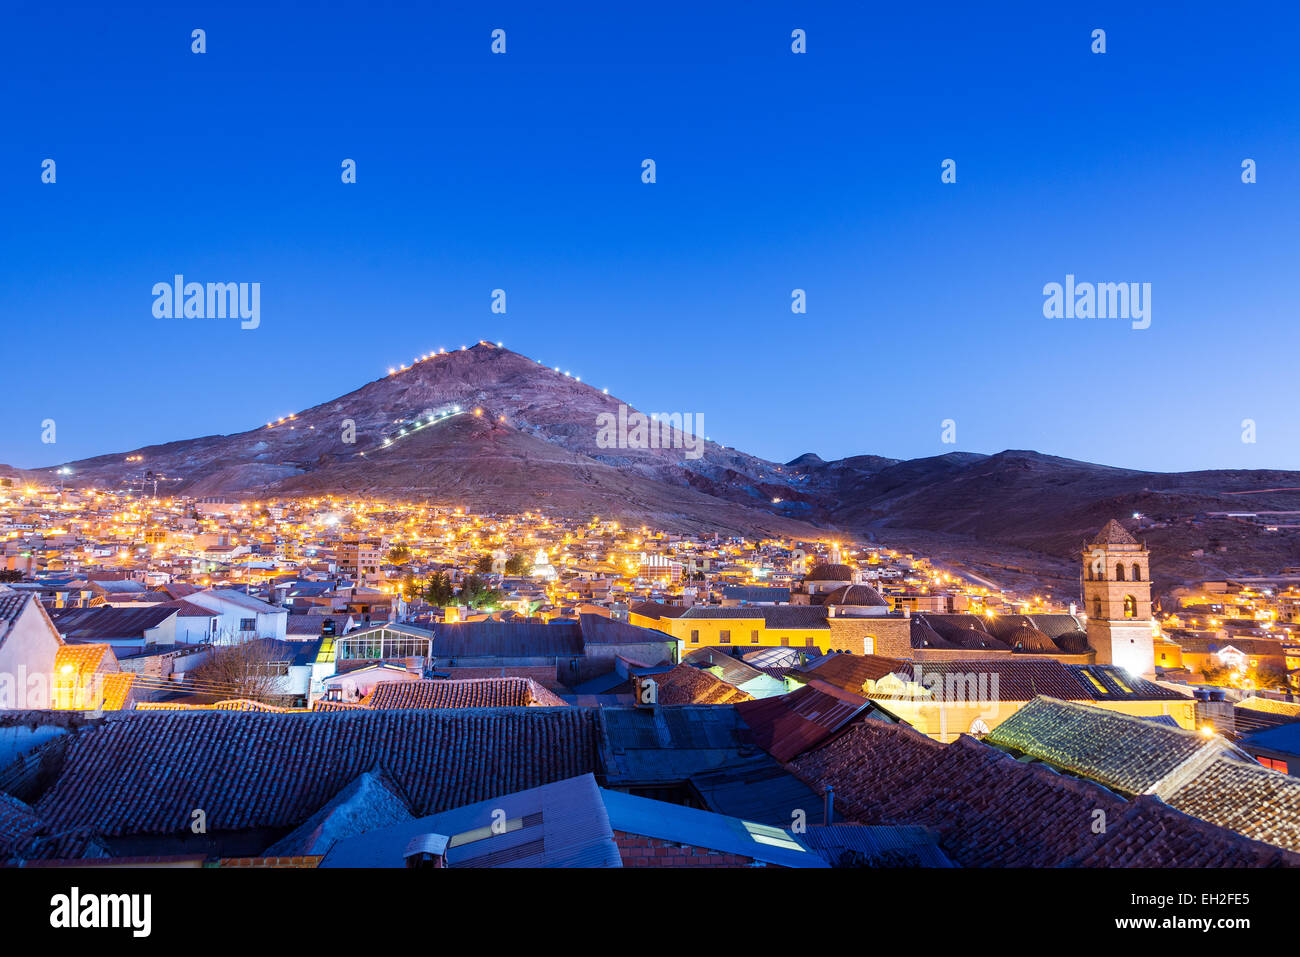 Historic center of Potosi, Bolivia at night with Cerro Rico in the background - Stock Image